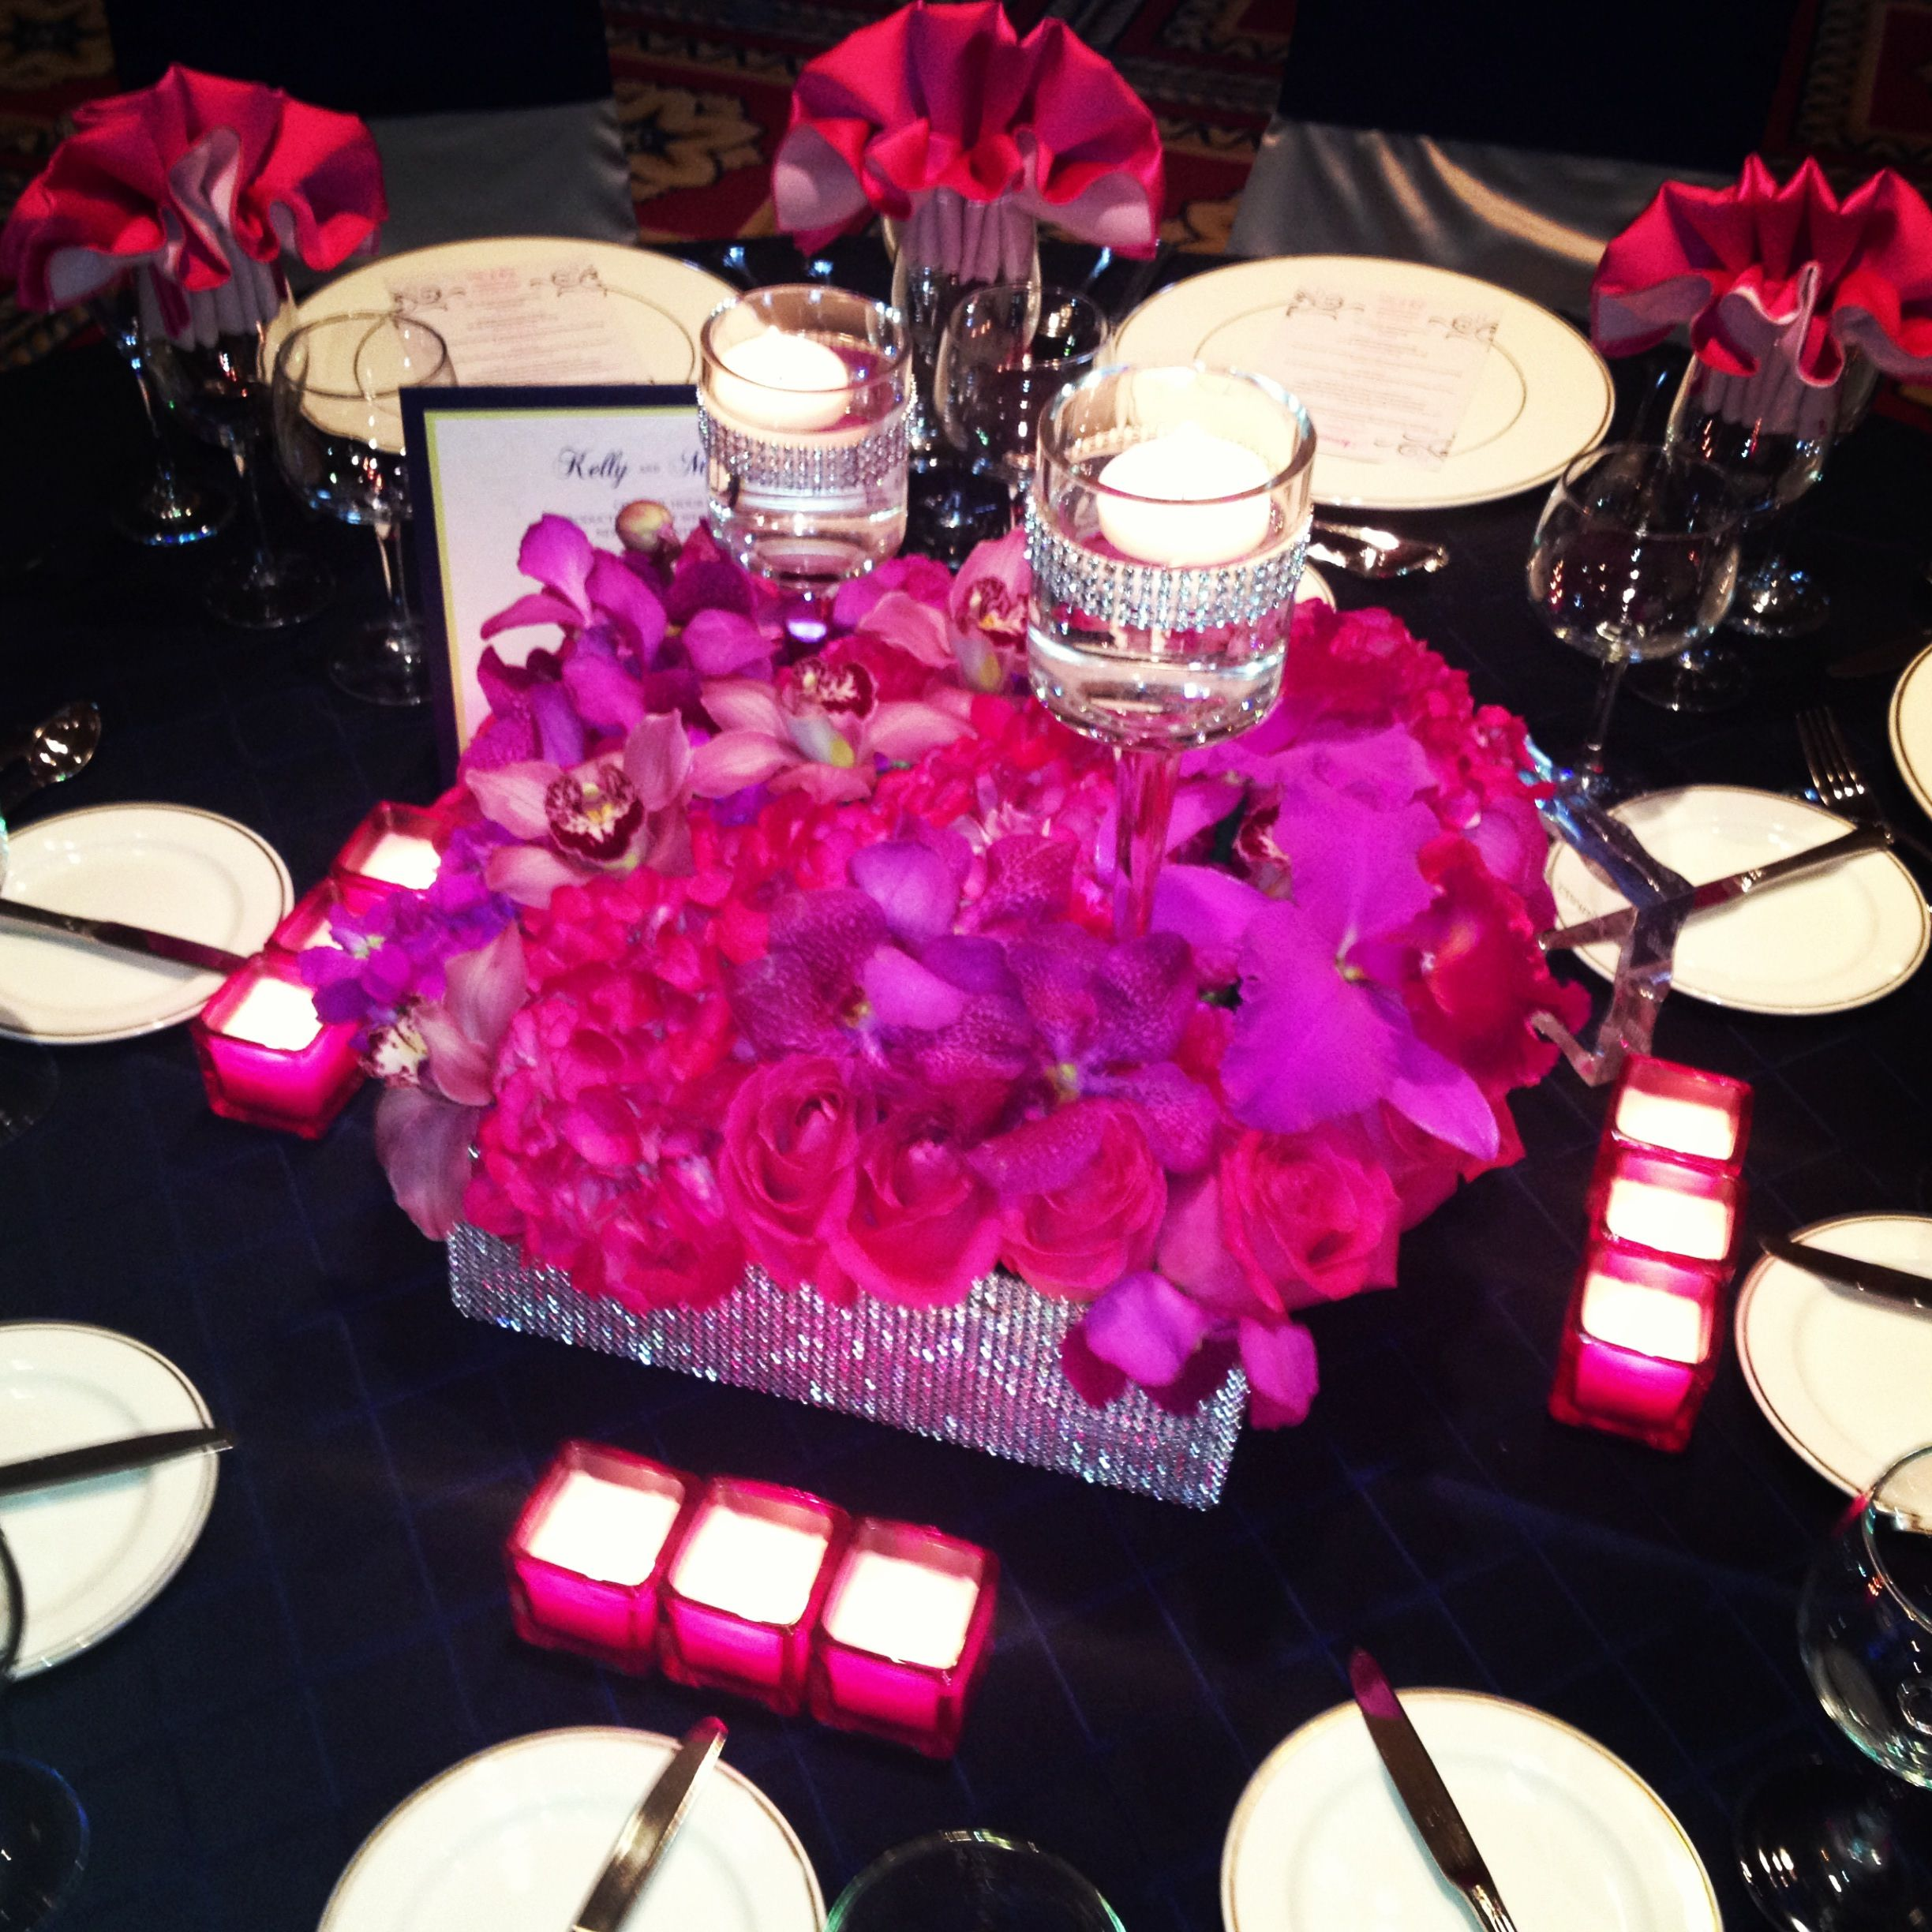 Wedding Flowers And Decorations Hot Pink Roses Dendrobium Orchids